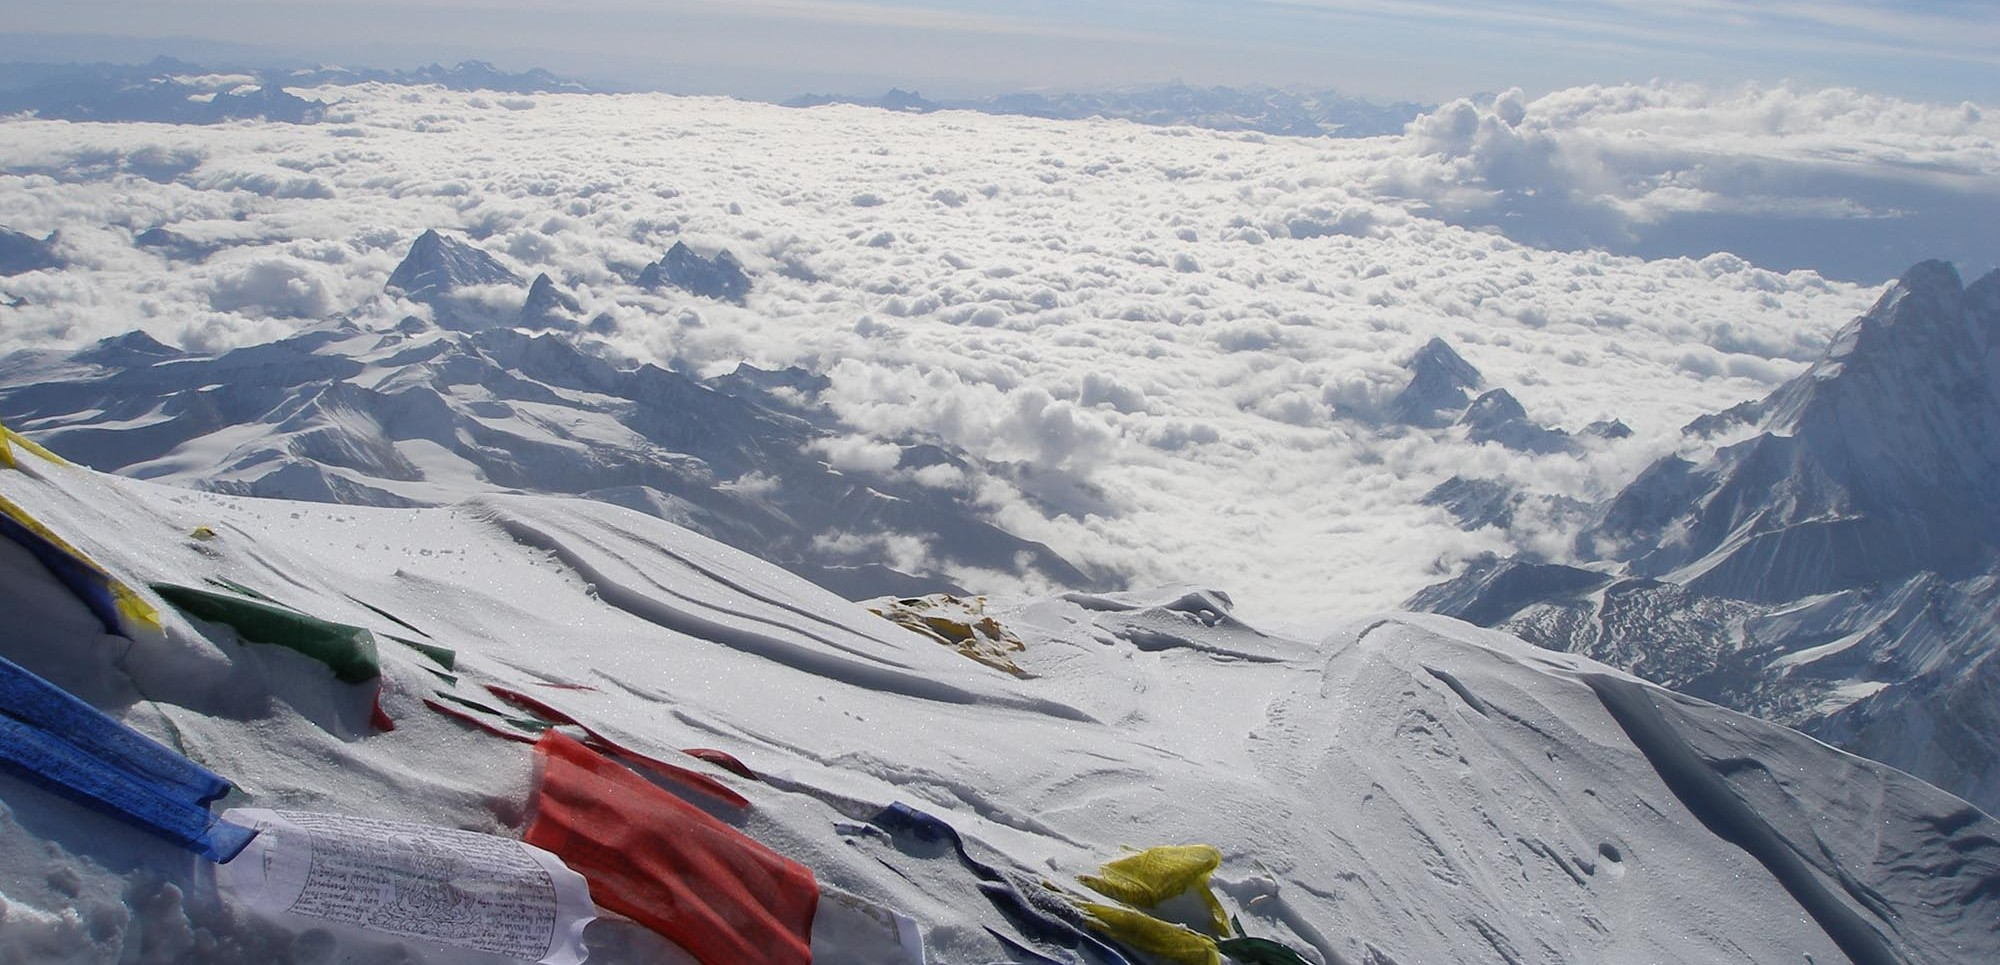 Prayer flags strewn on the summit of Mount Everest